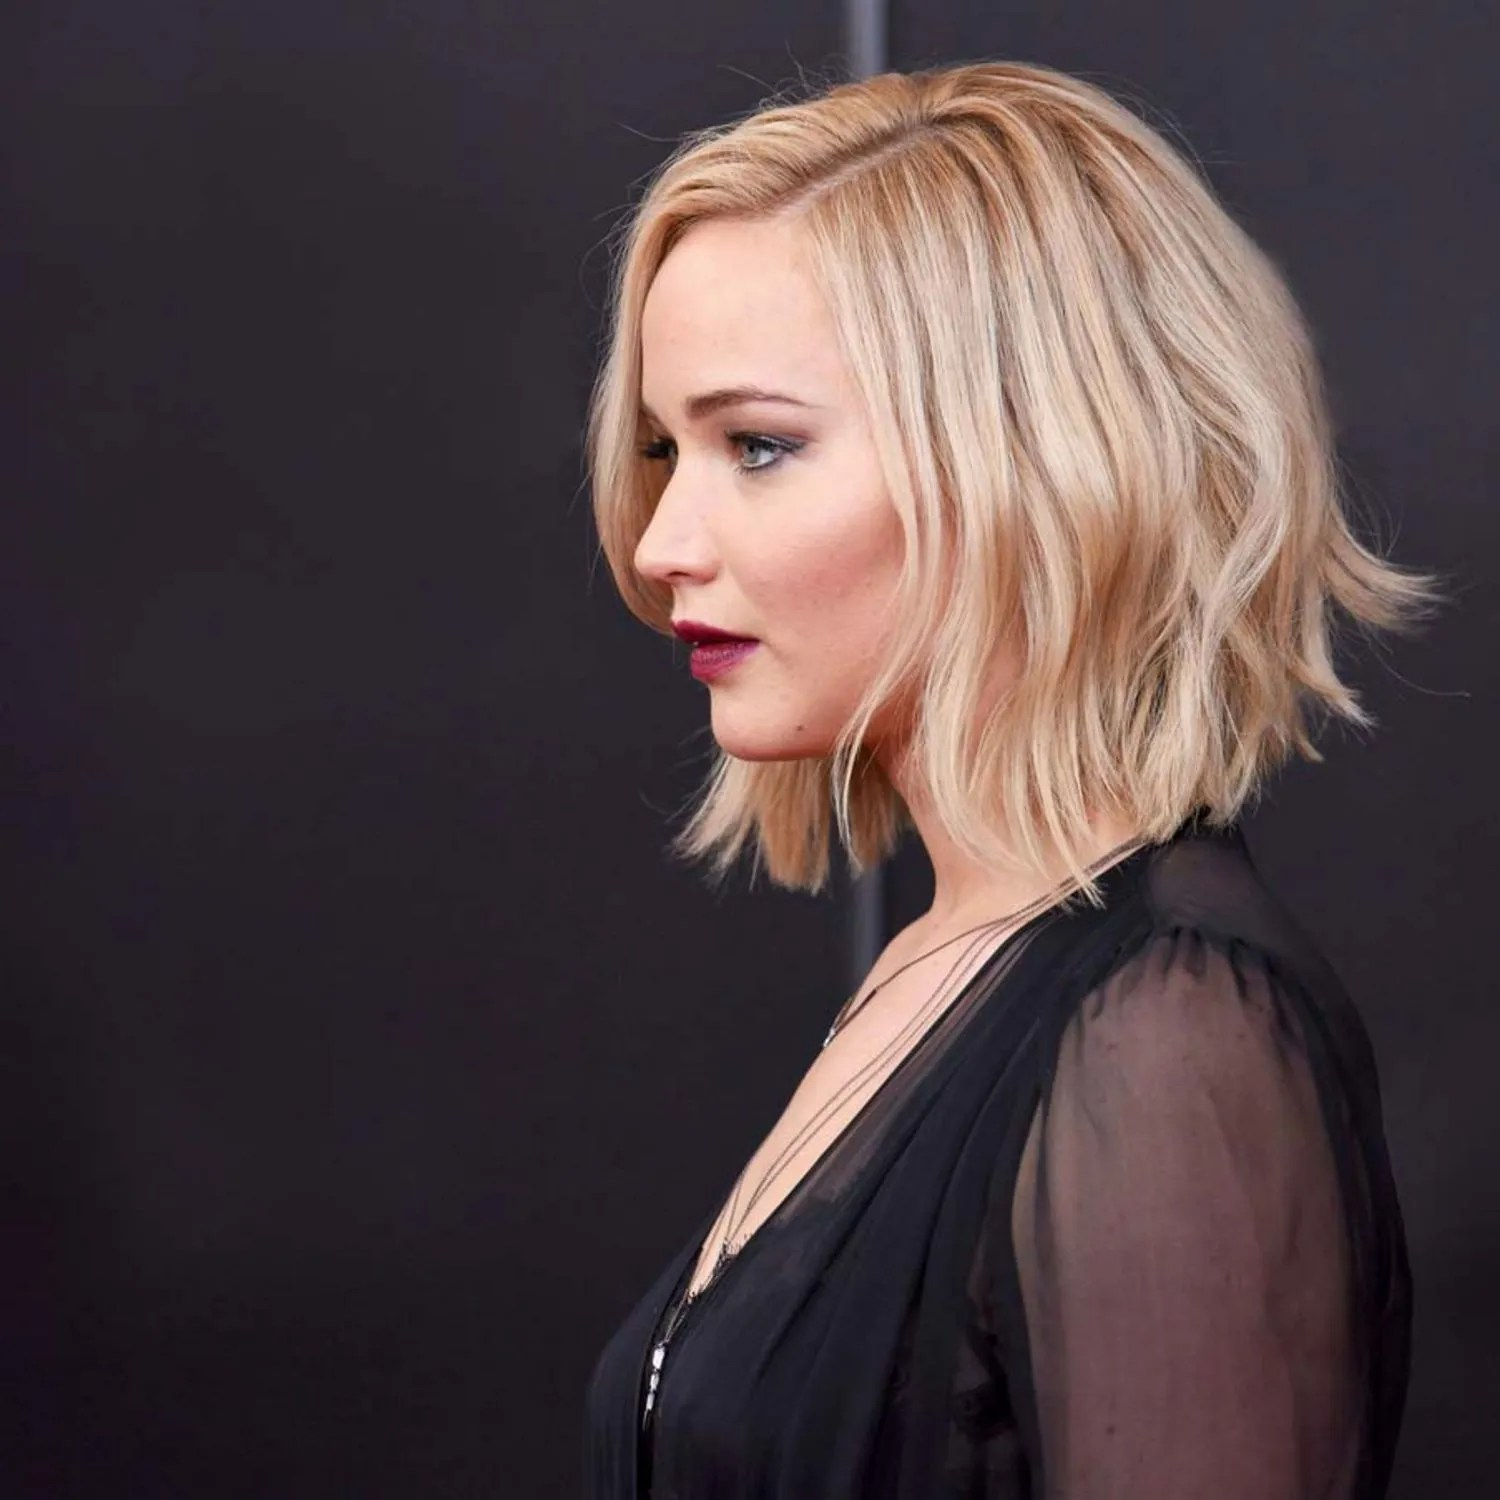 Celebrity Hairstylists To Follow For 2016 Golden Globes